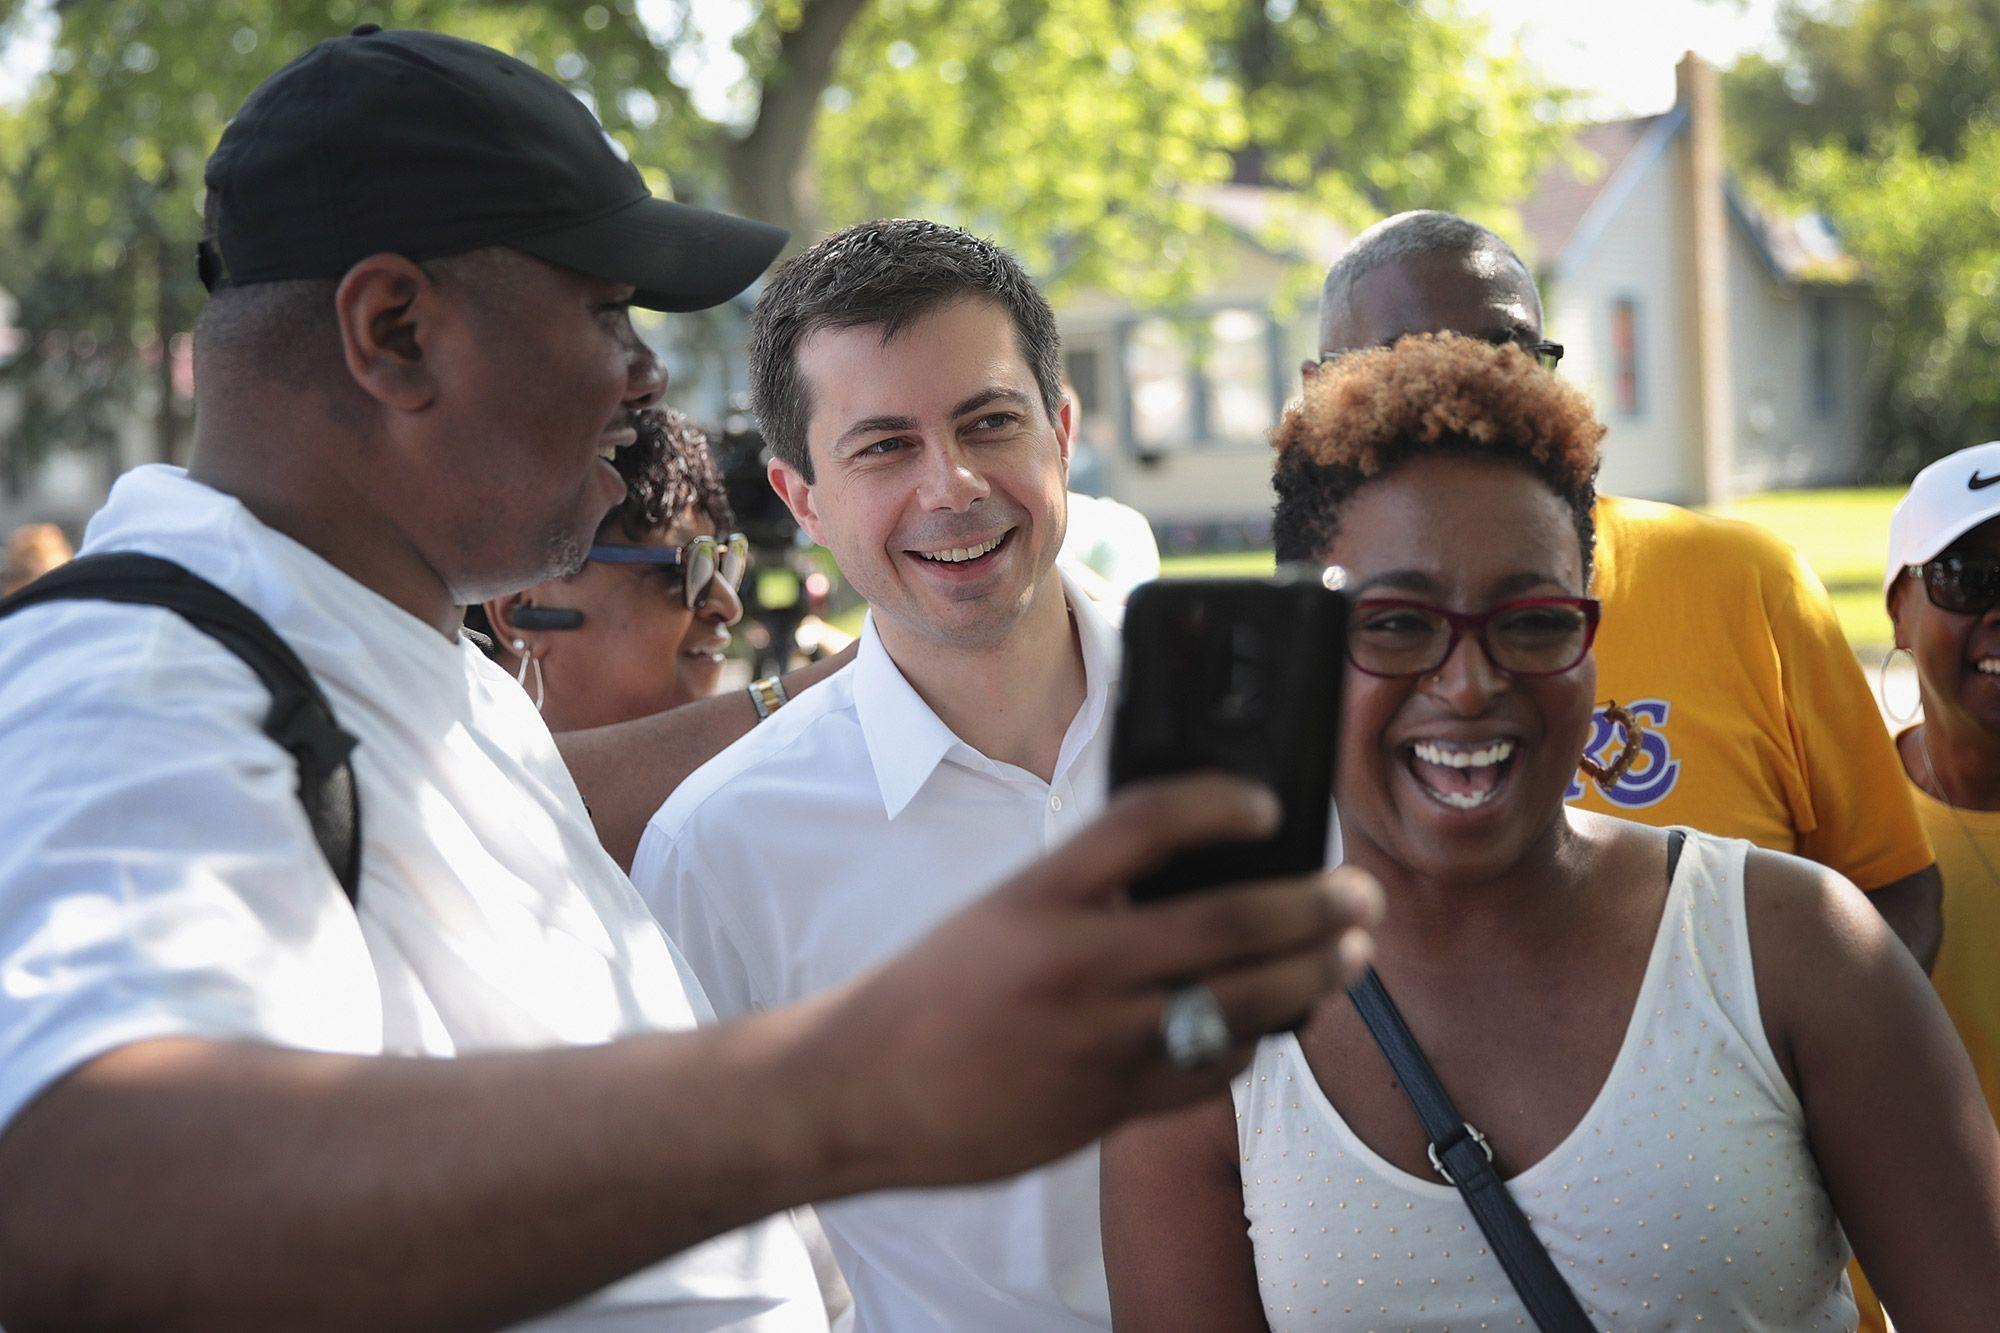 South Bend Mayor Pete Buttigieg raises $28.4M in second quarter